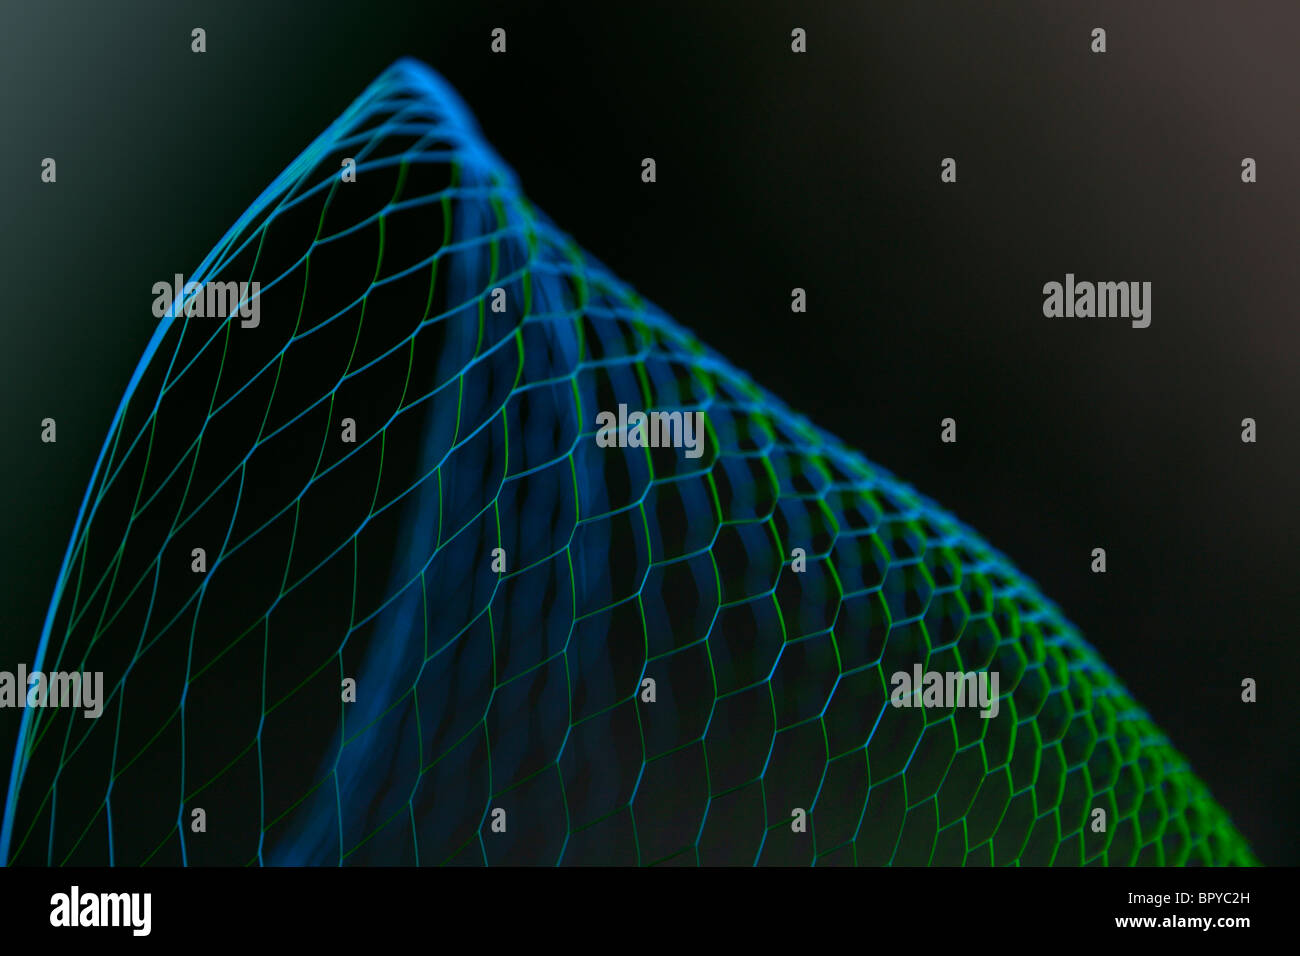 Illuminating wire frame basket with a black background - Stock Image